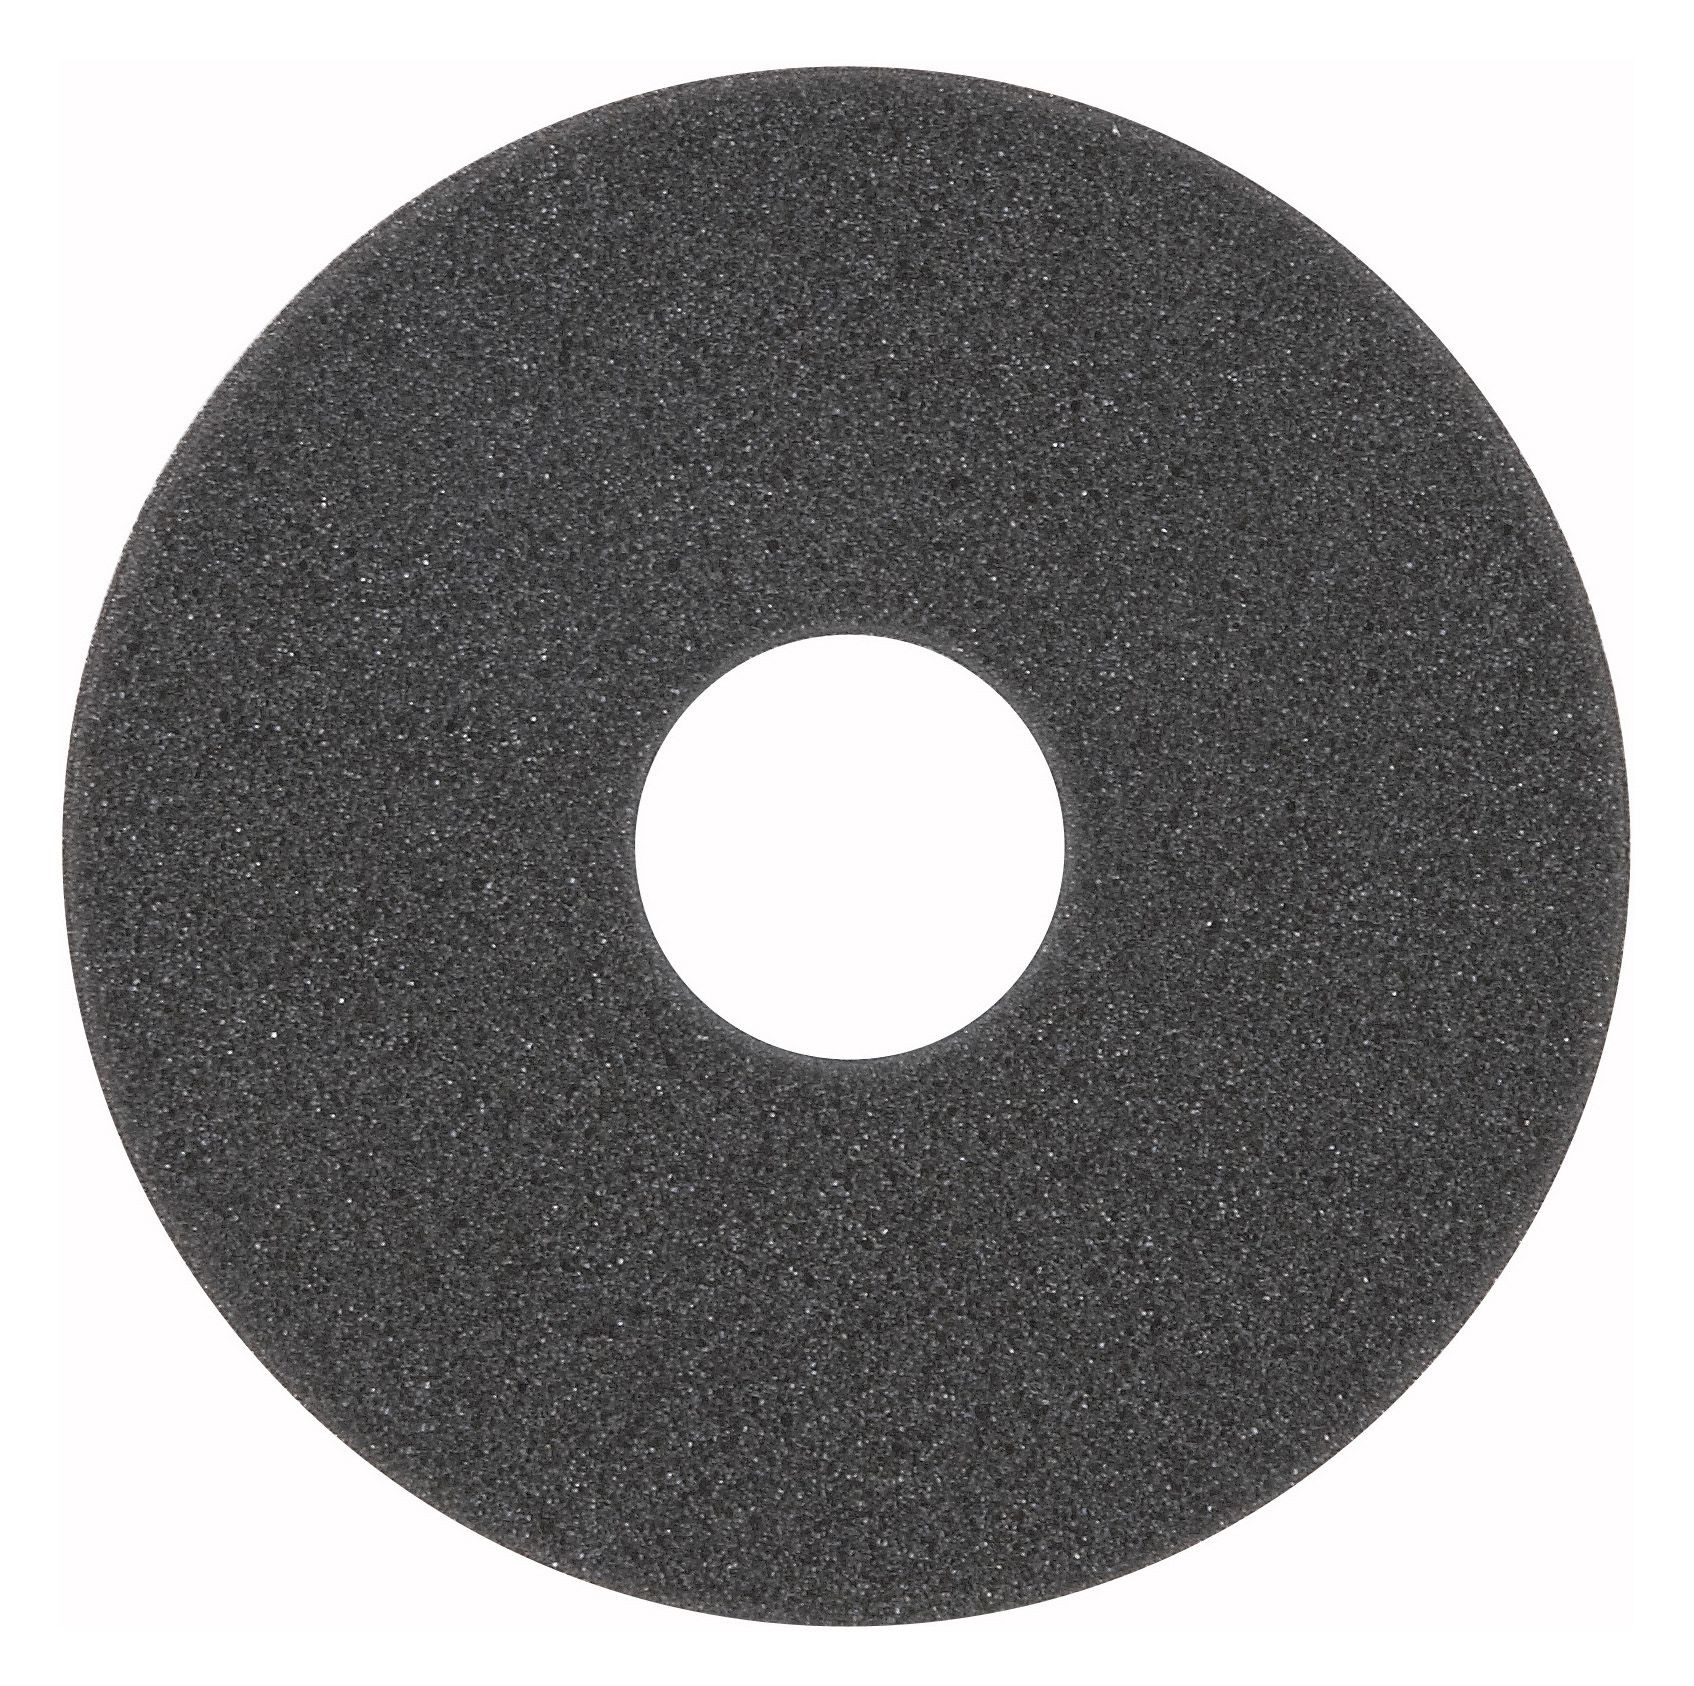 Winco GR-3S Replacement Sponge for Glass Rimmer